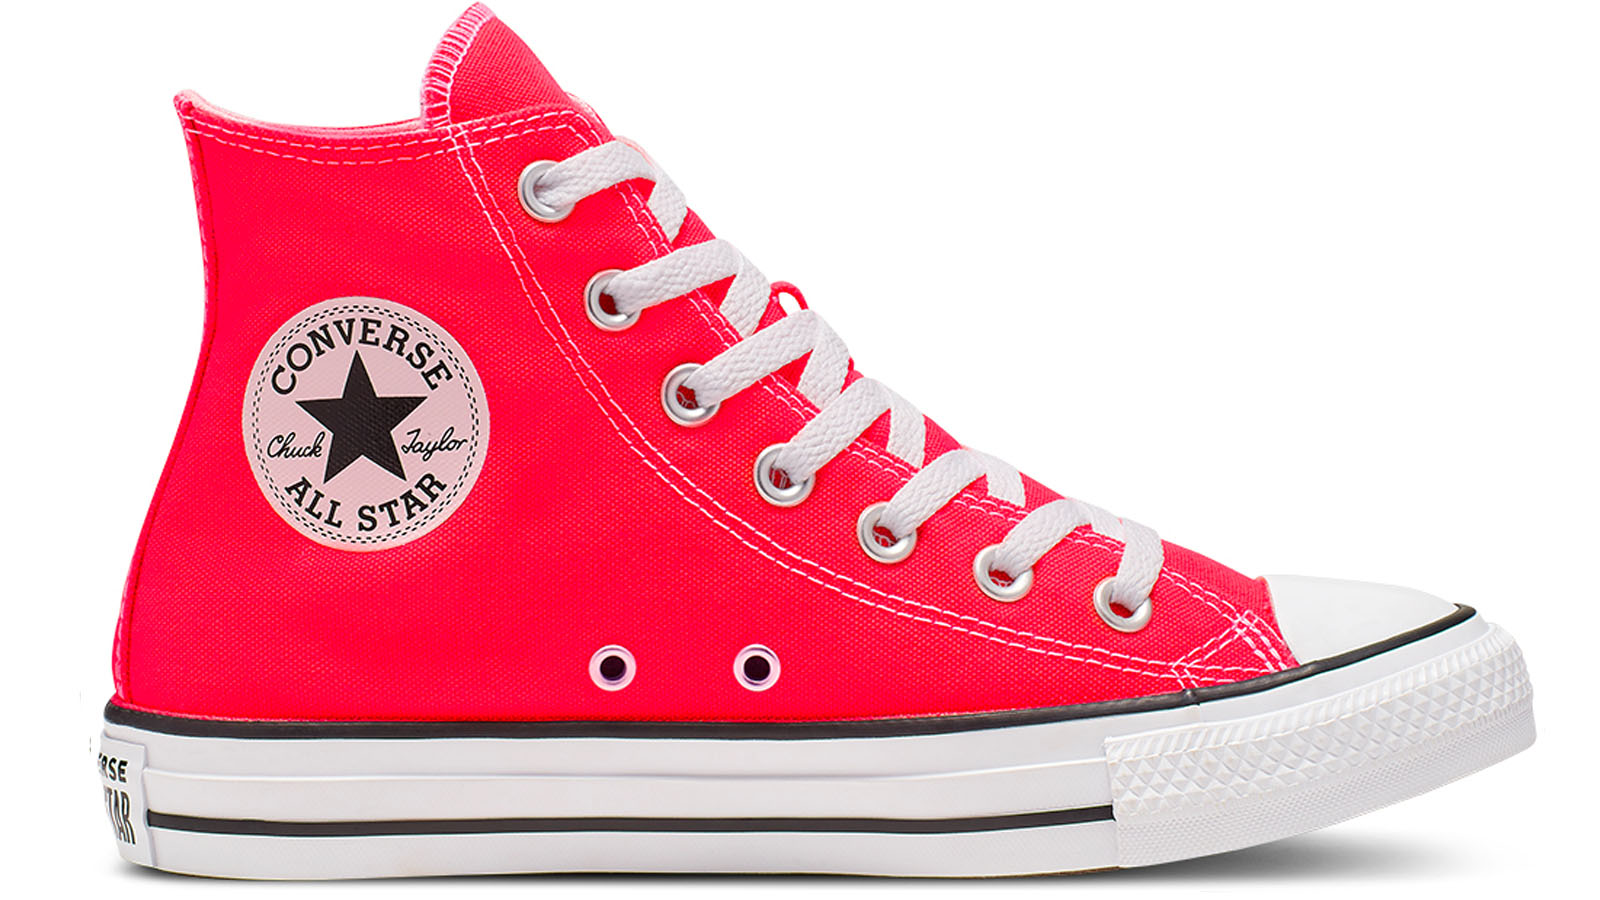 converse high top bright red